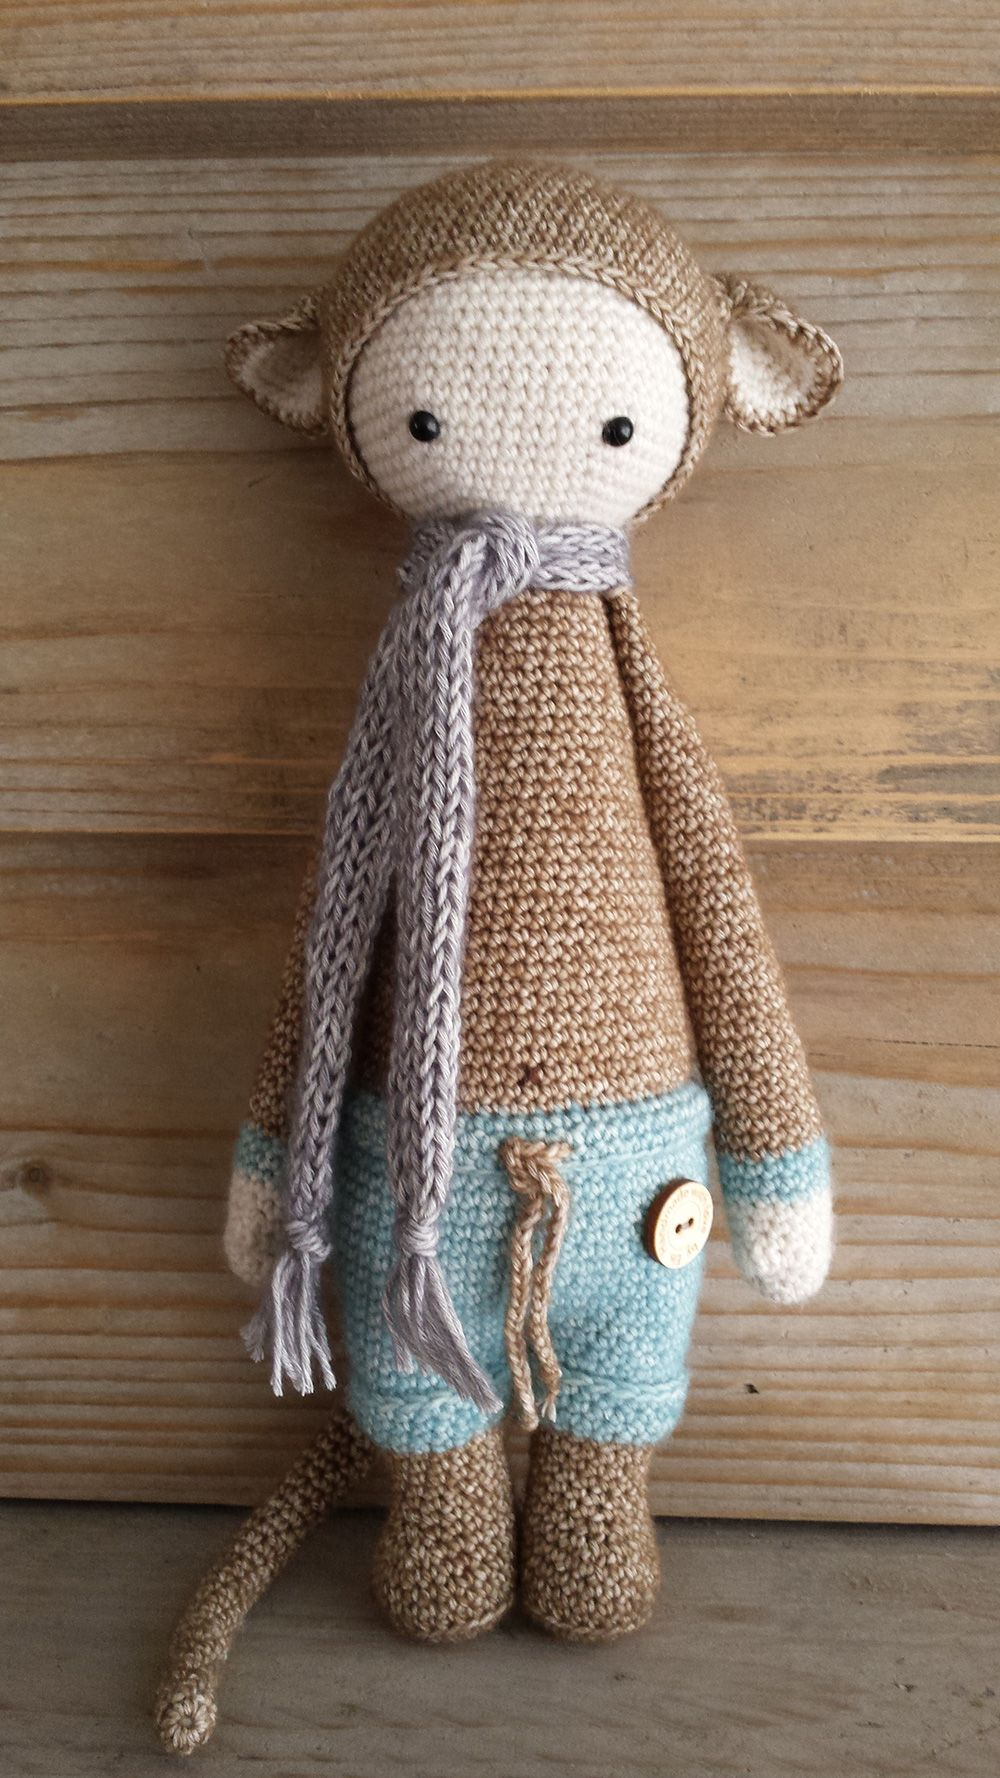 RADA the rat made by Els van Sch. / crochet pattern by lalylala ...